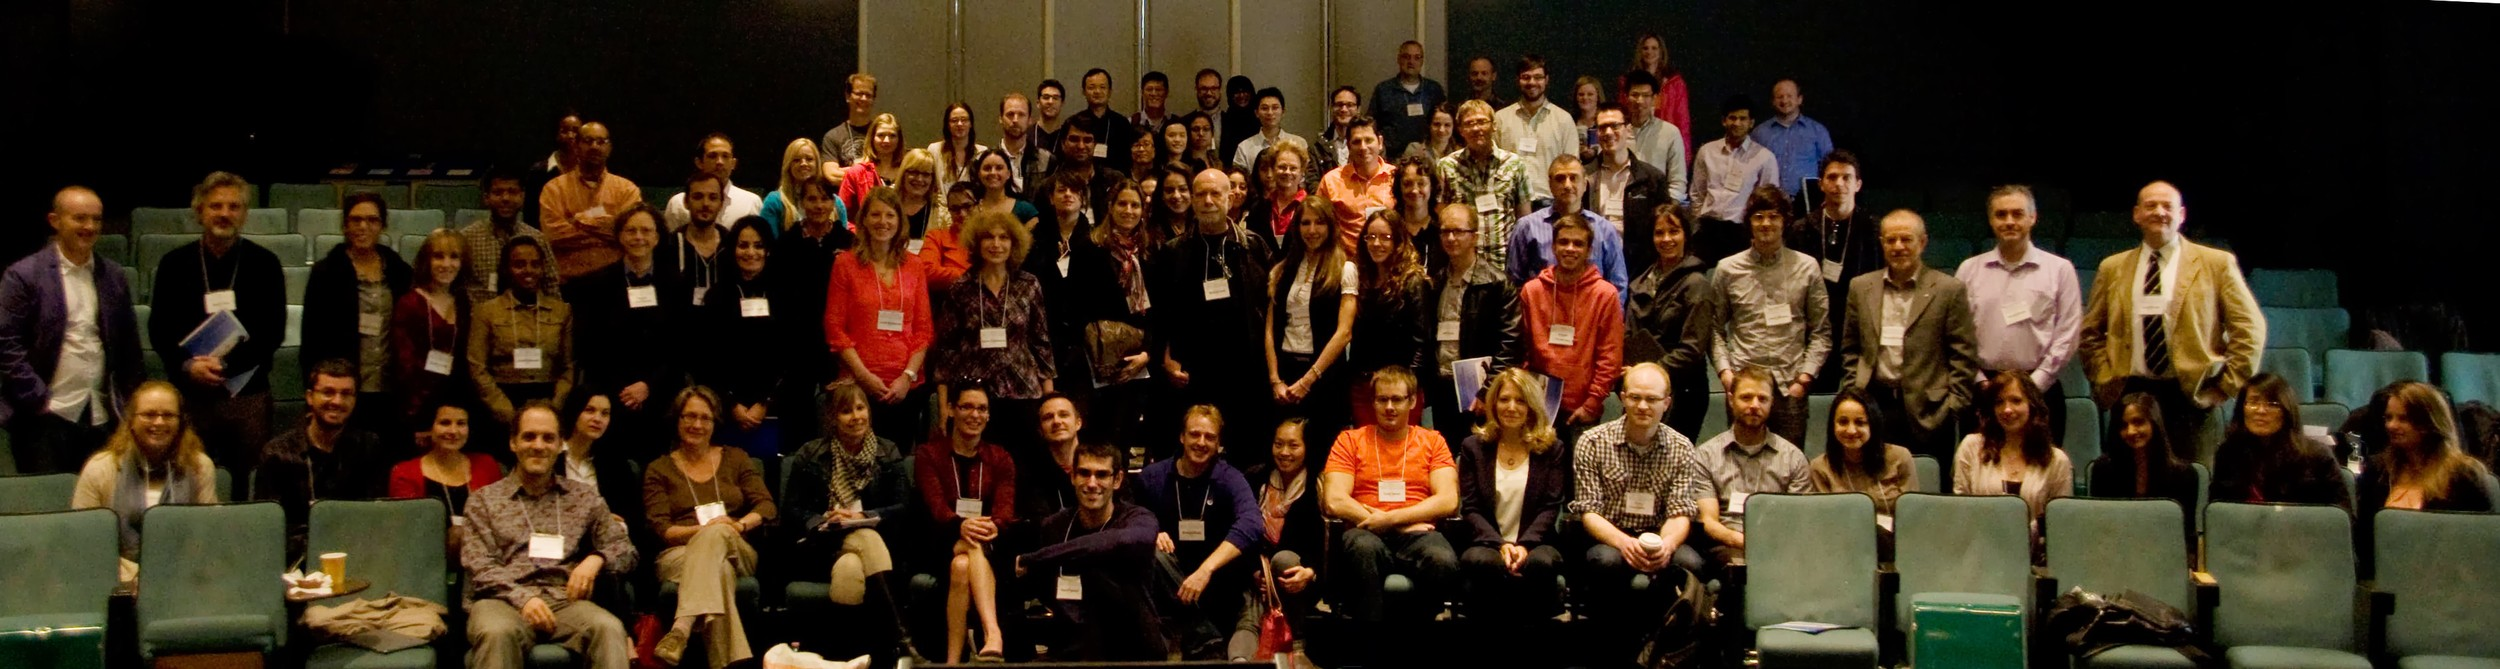 Group Photo, First Conference of the CSC, Toronto, May 2013